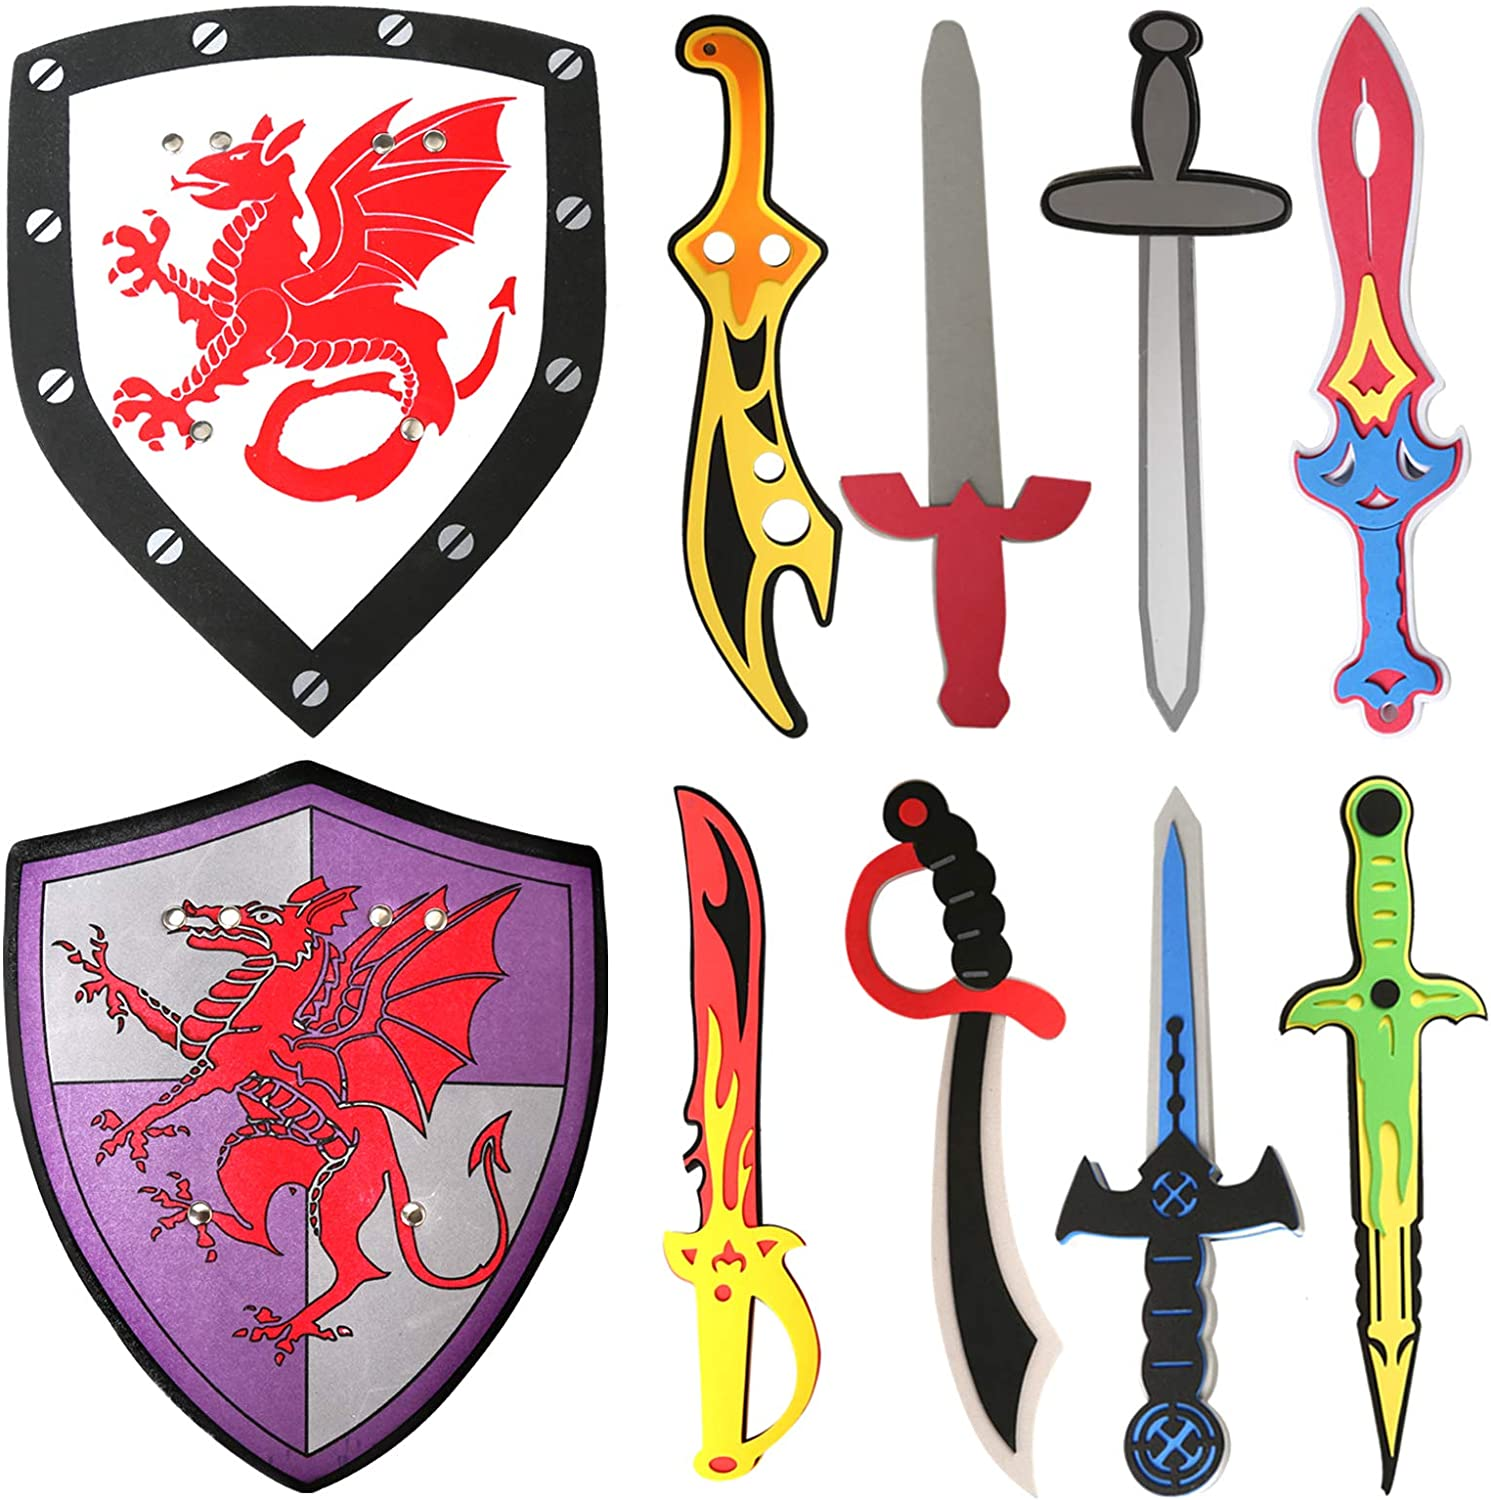 OUFOTAT 10 Piece Foam Swords Shield Toy for Kids Pretend Play Medieval Ninja Prince Warrior Knights Weapons Toys for Boys Role Play Accessories Party Favor Gifts